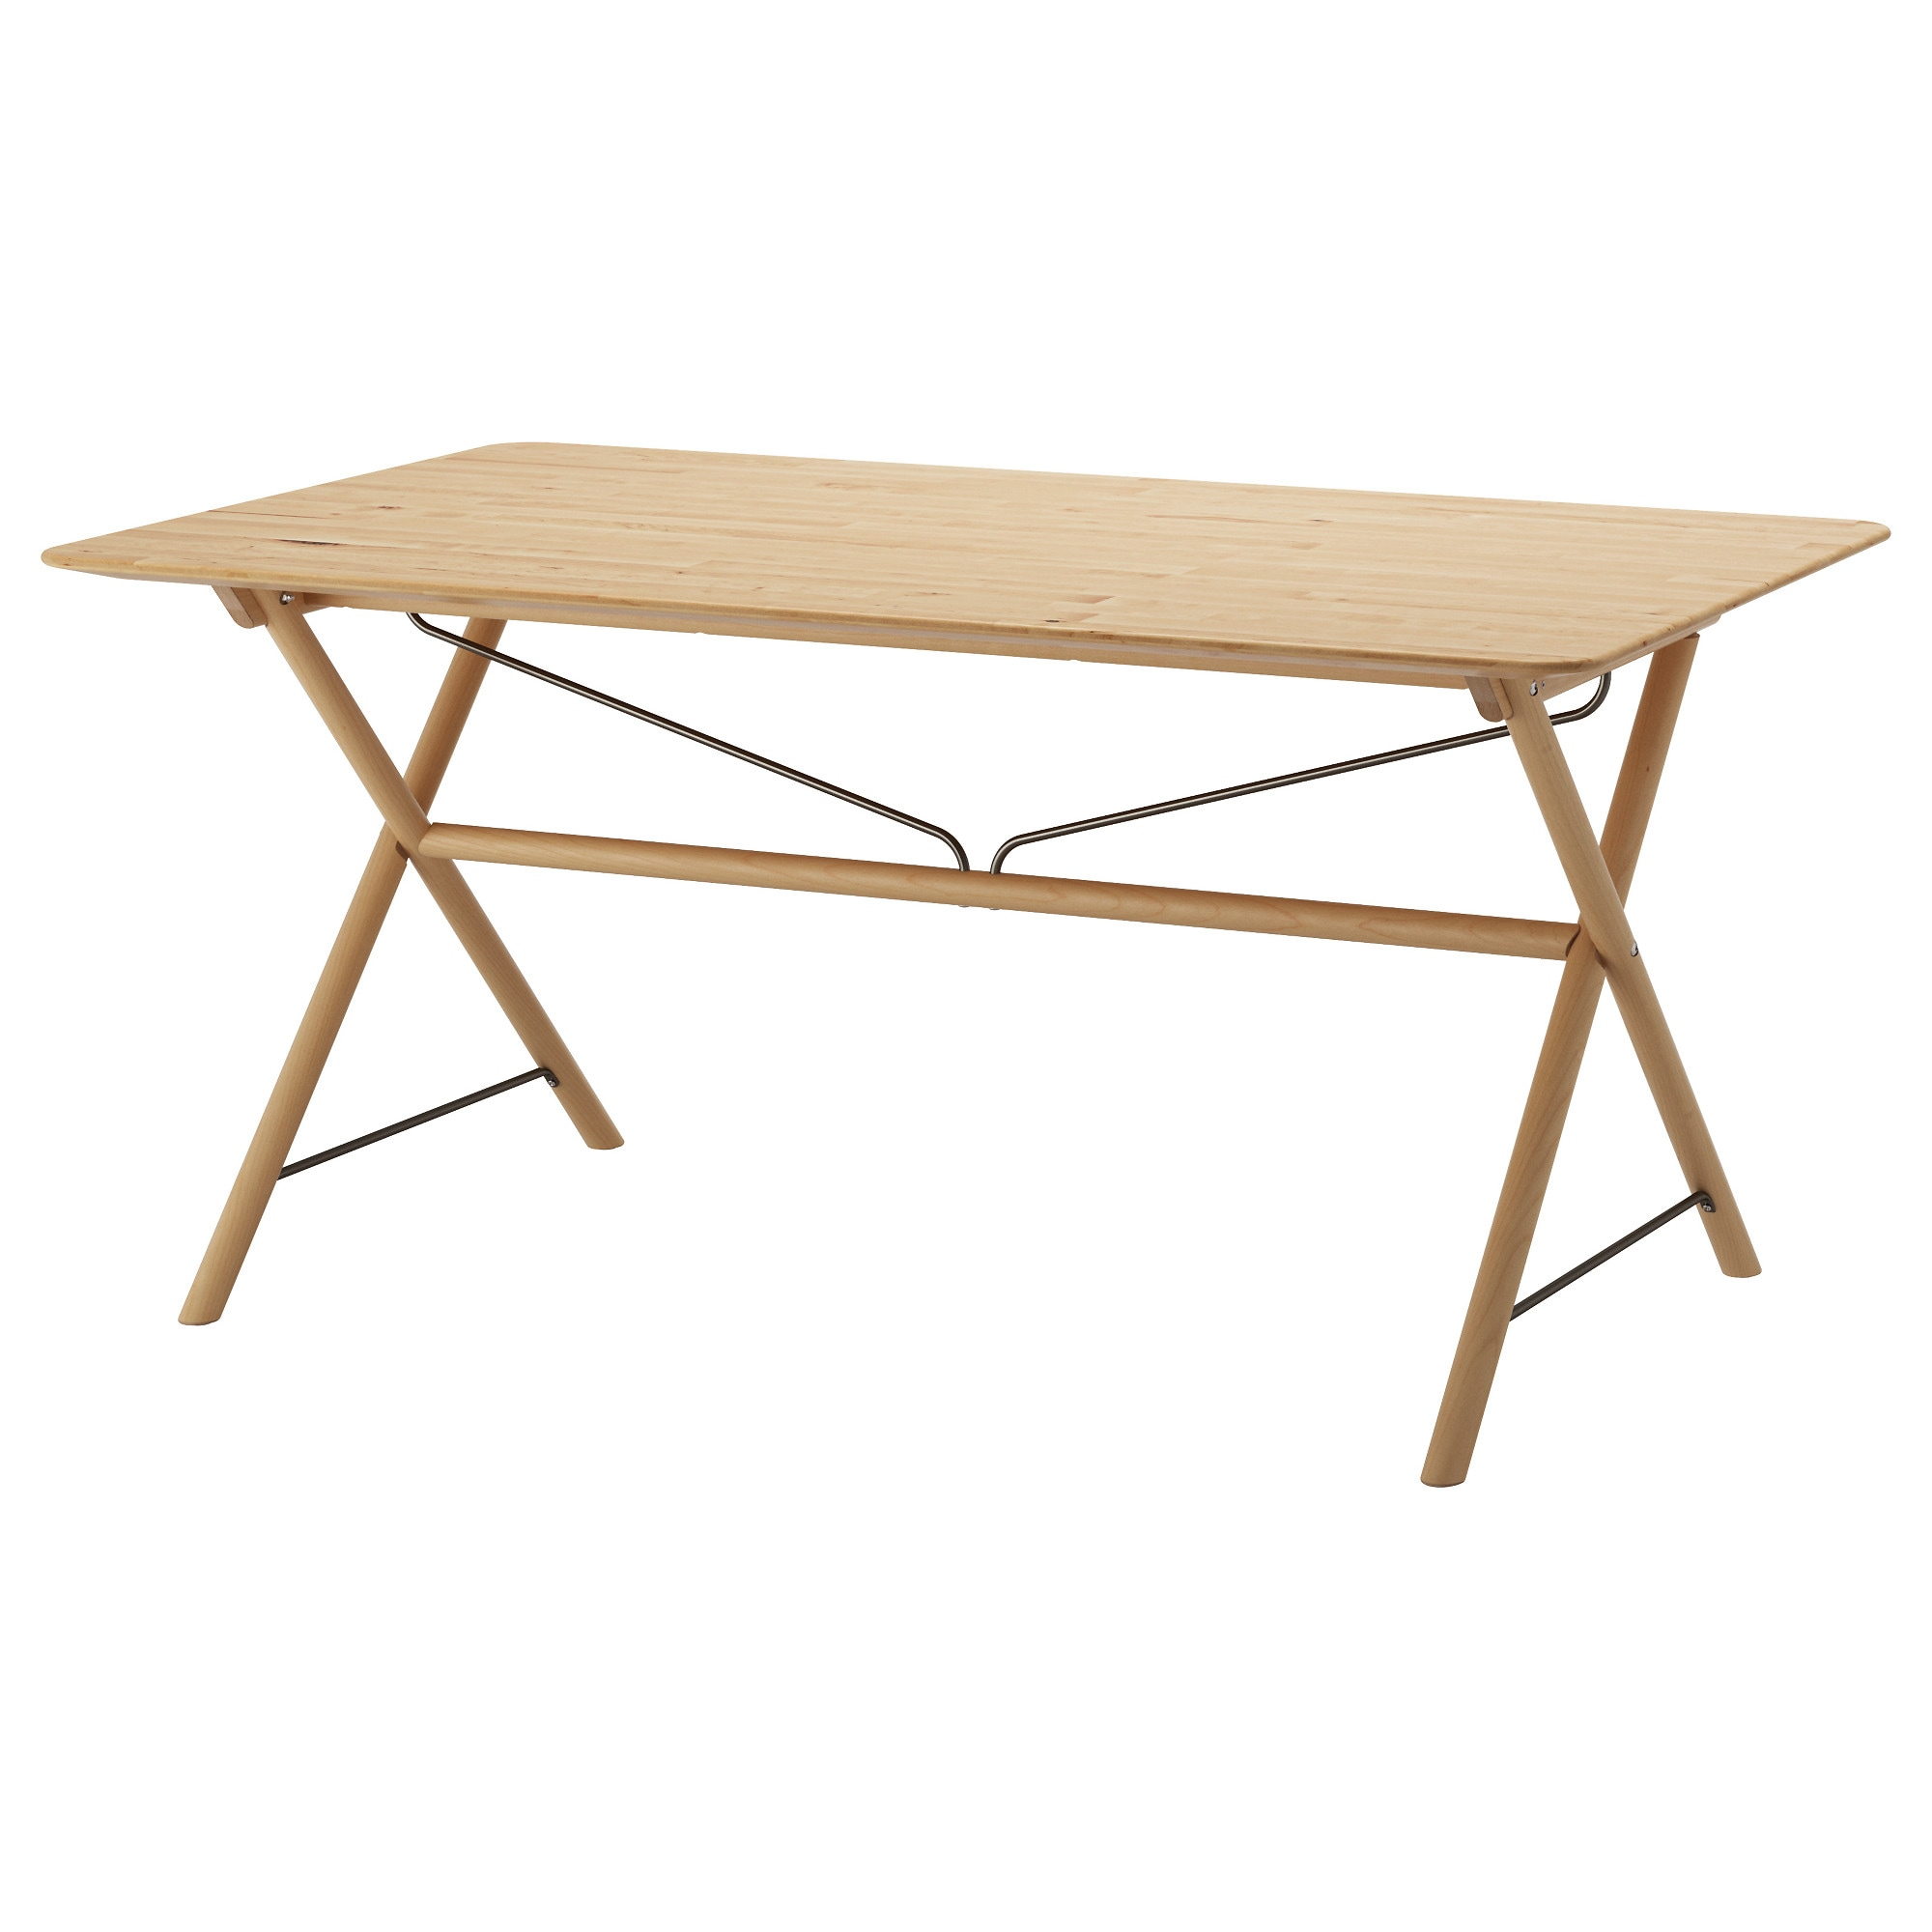 Table carree 8 personnes ikea 28 images pin table for Table basse carree industrielle